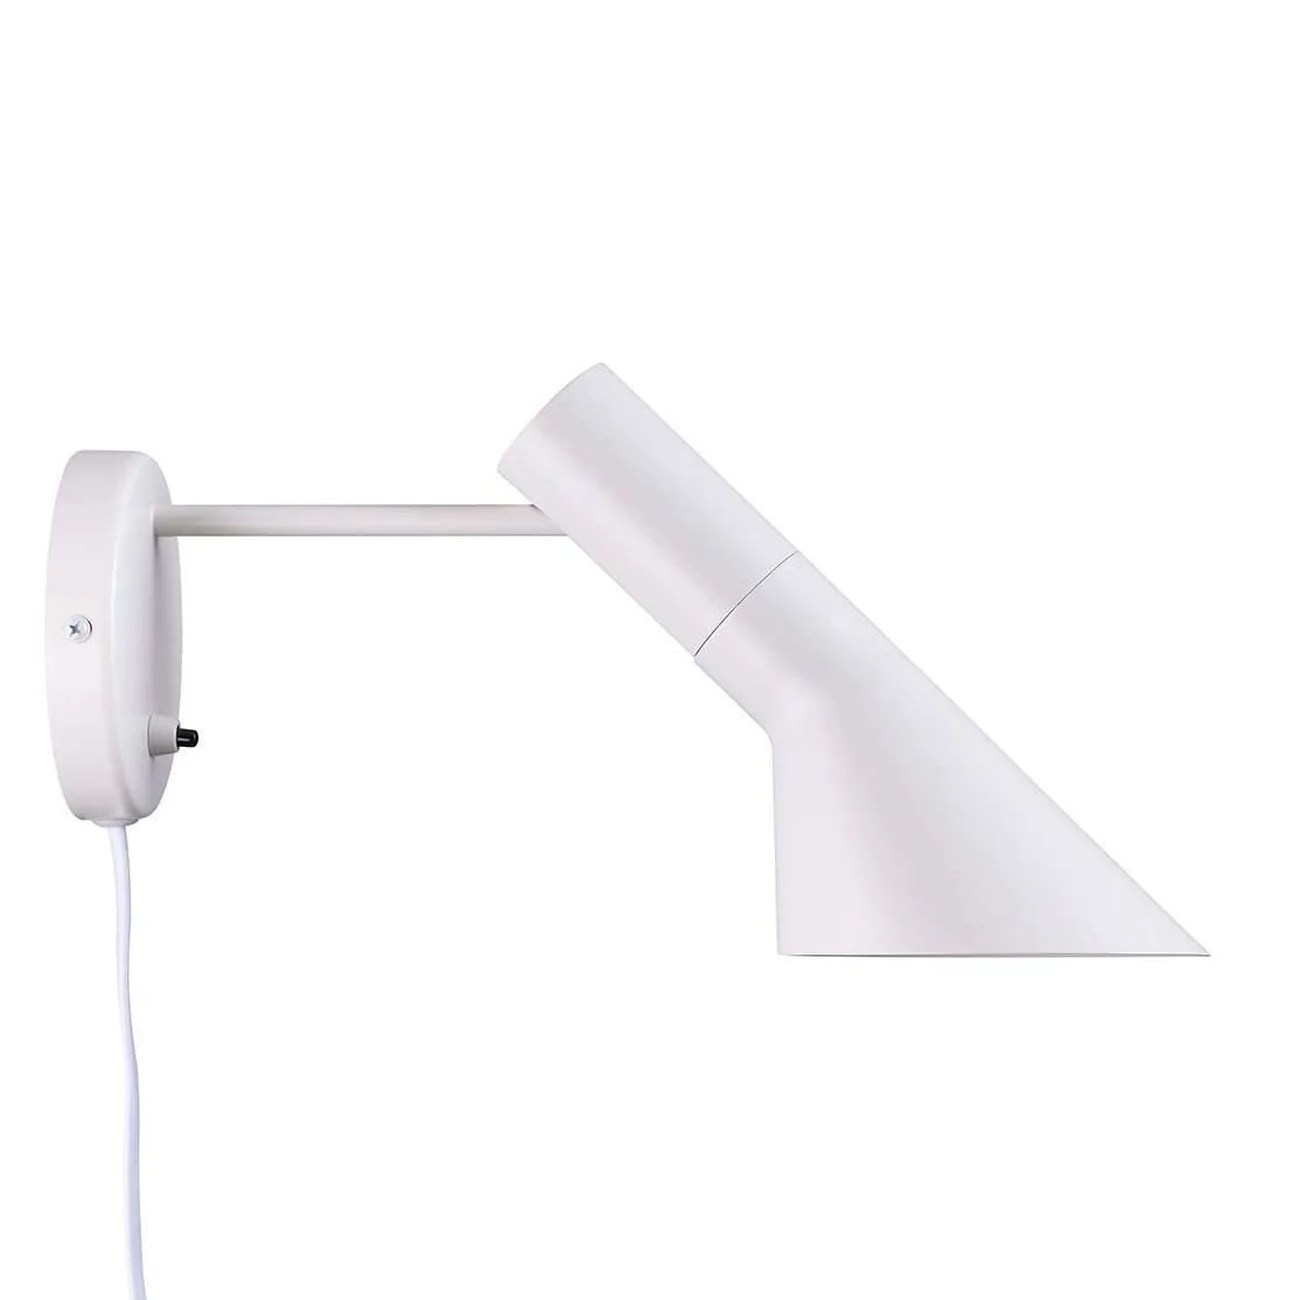 Arne Jacobsen Wall Sconce Mid Century Modern Reproduction Aj Wall Sconce White Inspired By